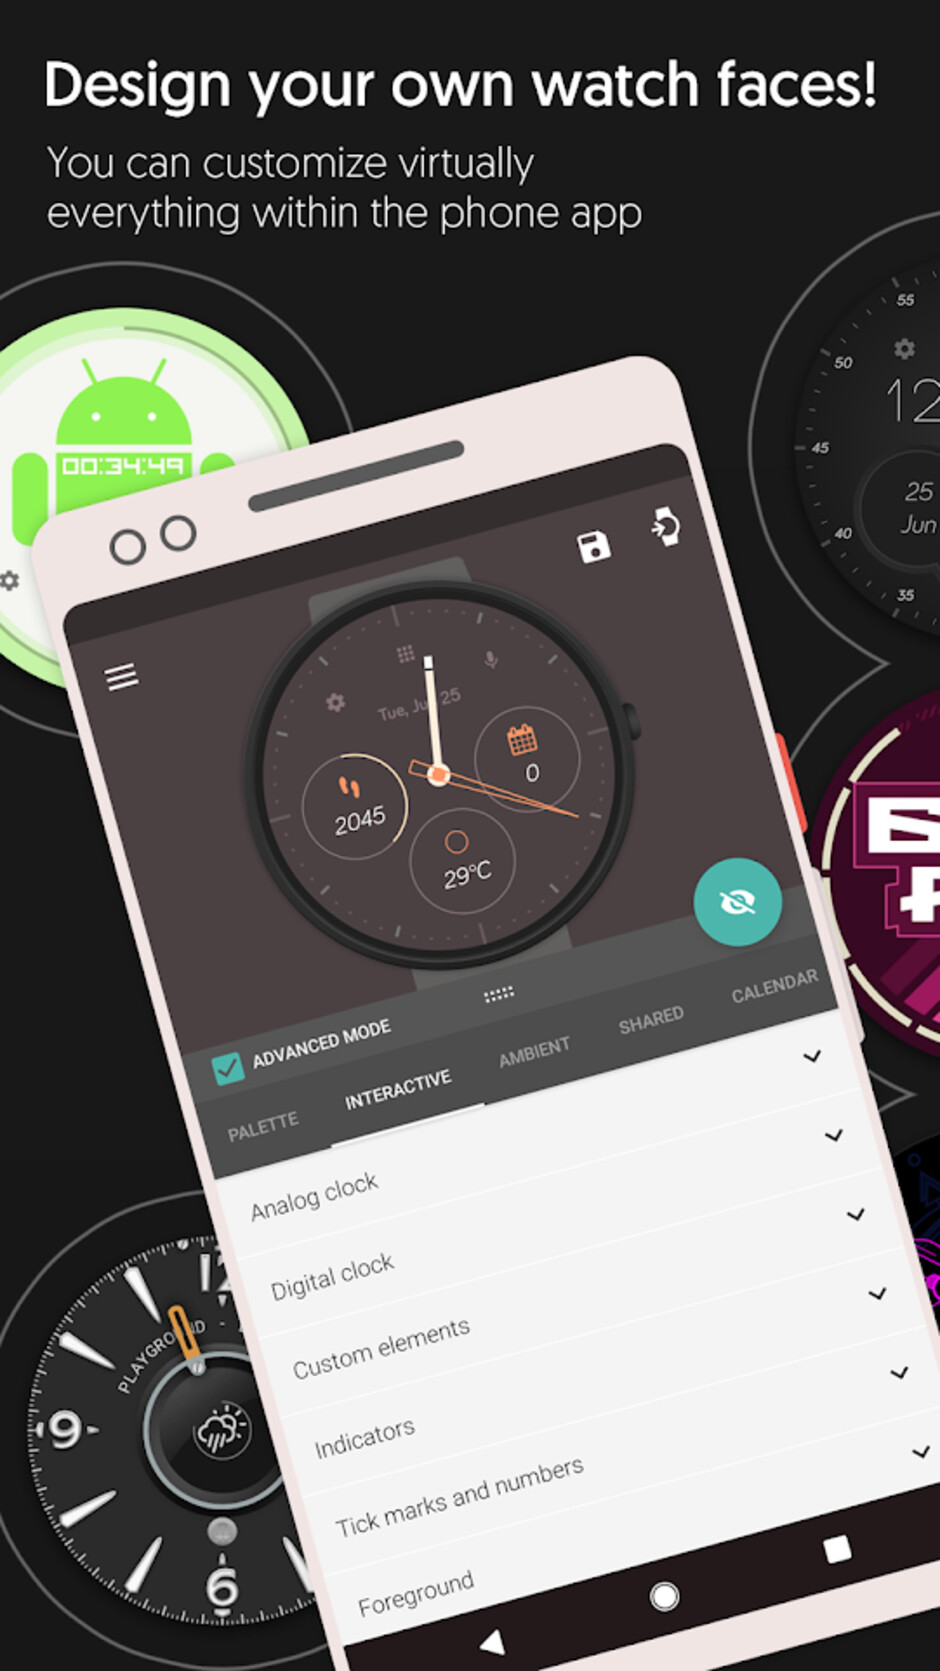 Pujie Black - Samsung Galaxy / Gear watches get thousands of new watch faces via Pujie Black